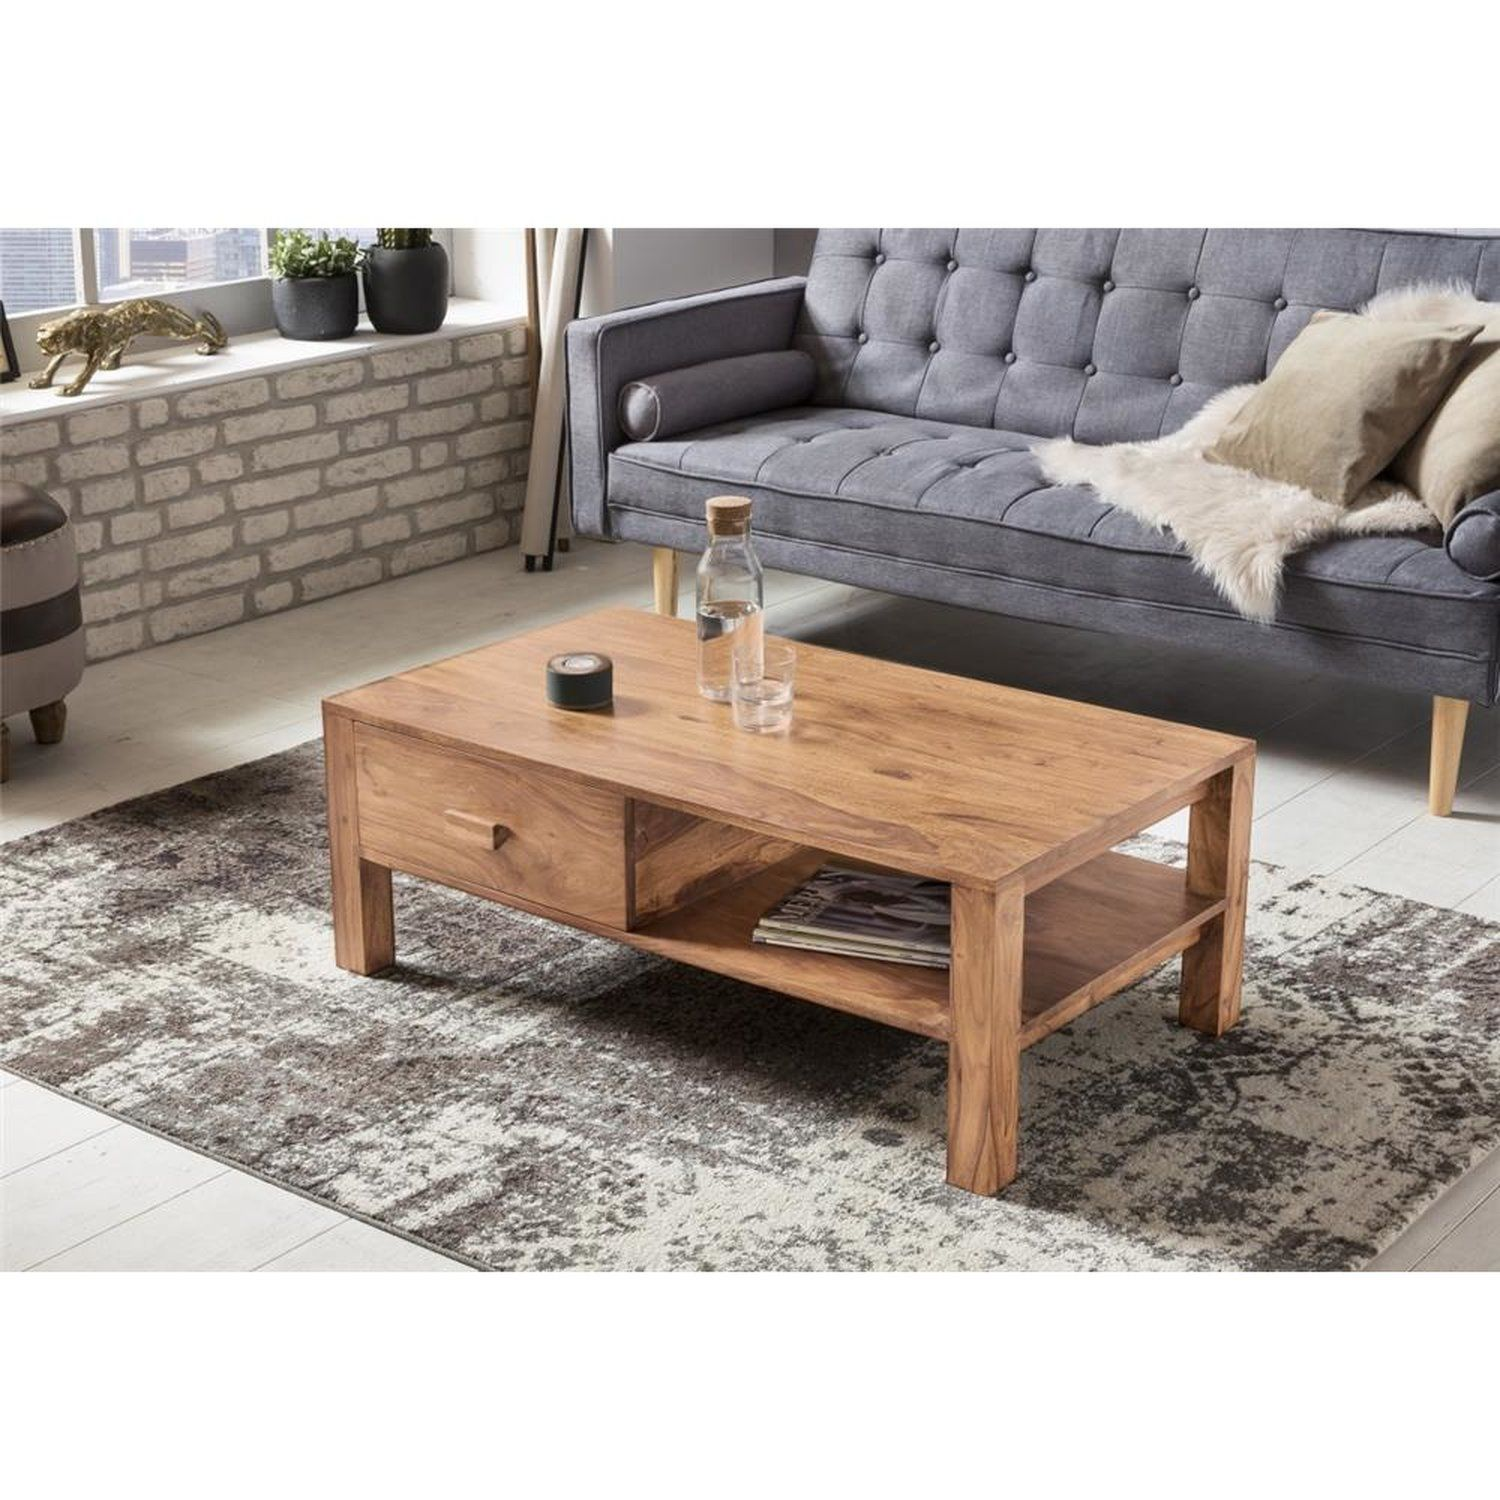 Selva Couchtisch Nussbaum Antik Wohnzimmertisch Mit Schublade Und Glasplatte Couchtisch Rund Buche Glastisch Wohnz Pallet Coffee Table Coffee Table Table